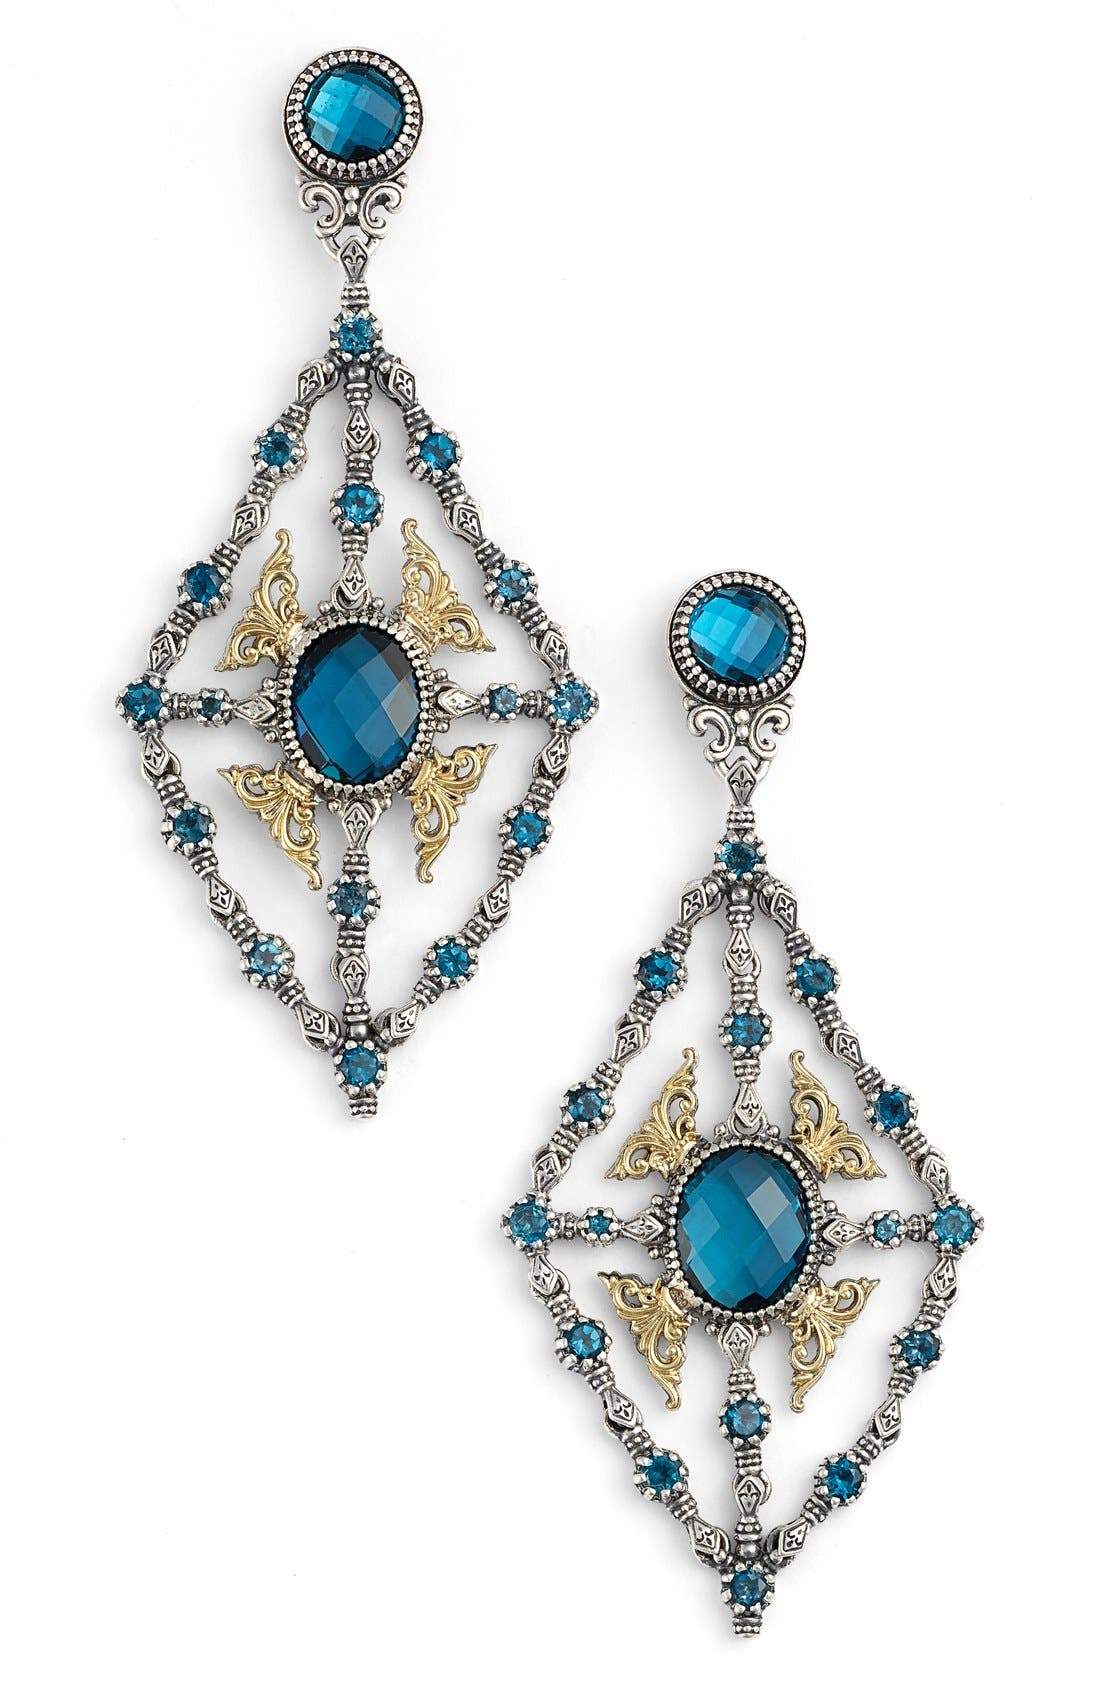 Konstantino 'Thalassa' Blue Topaz Kite Chandelier Earrings